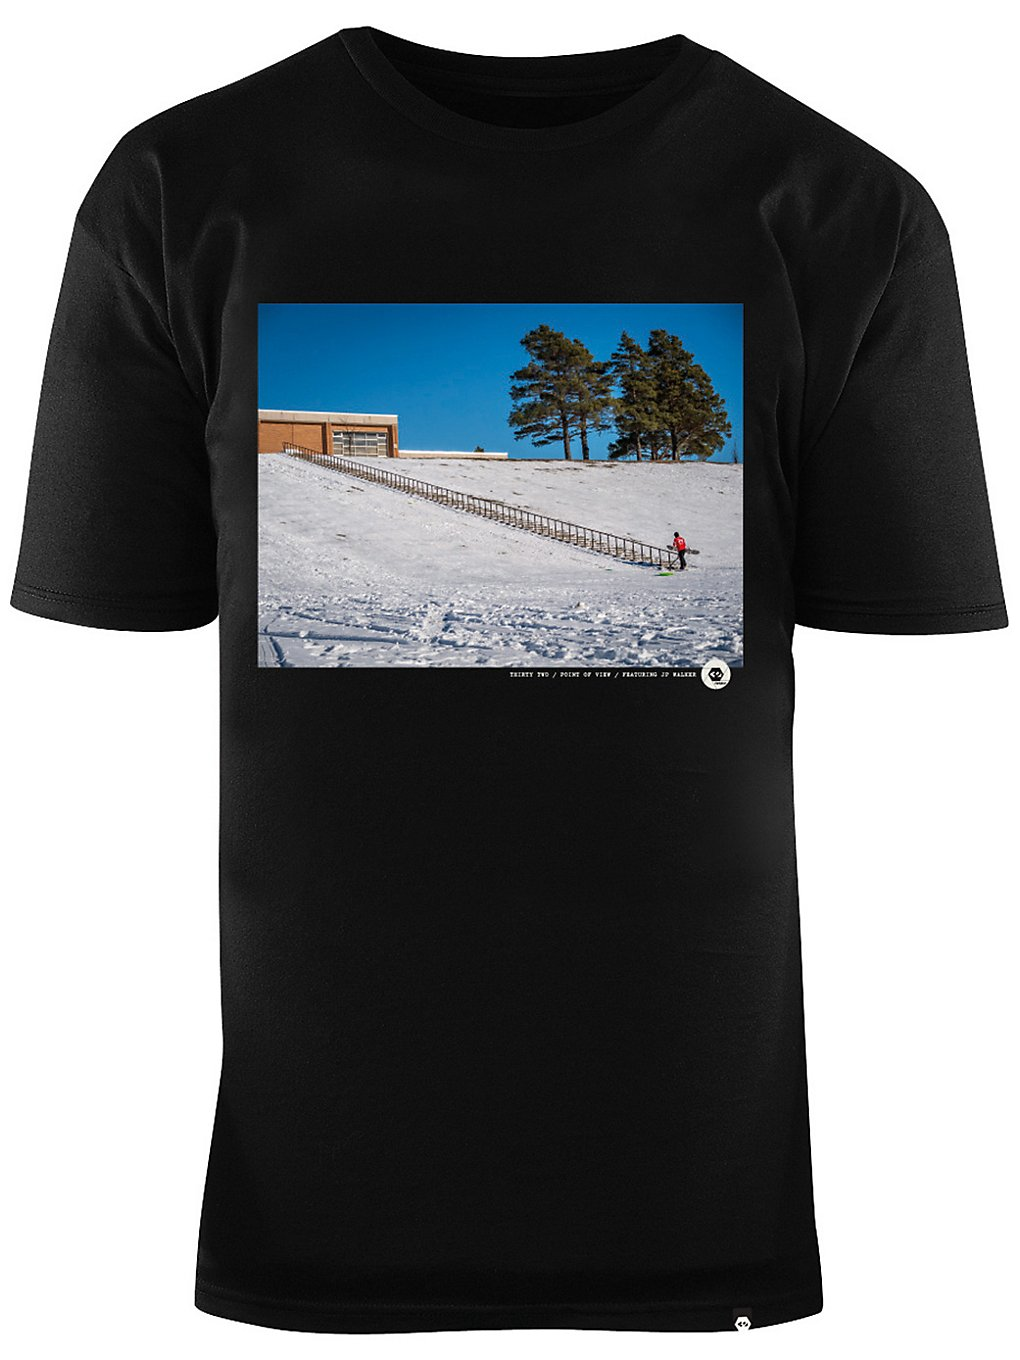 Image of 32 Pov T-Shirt